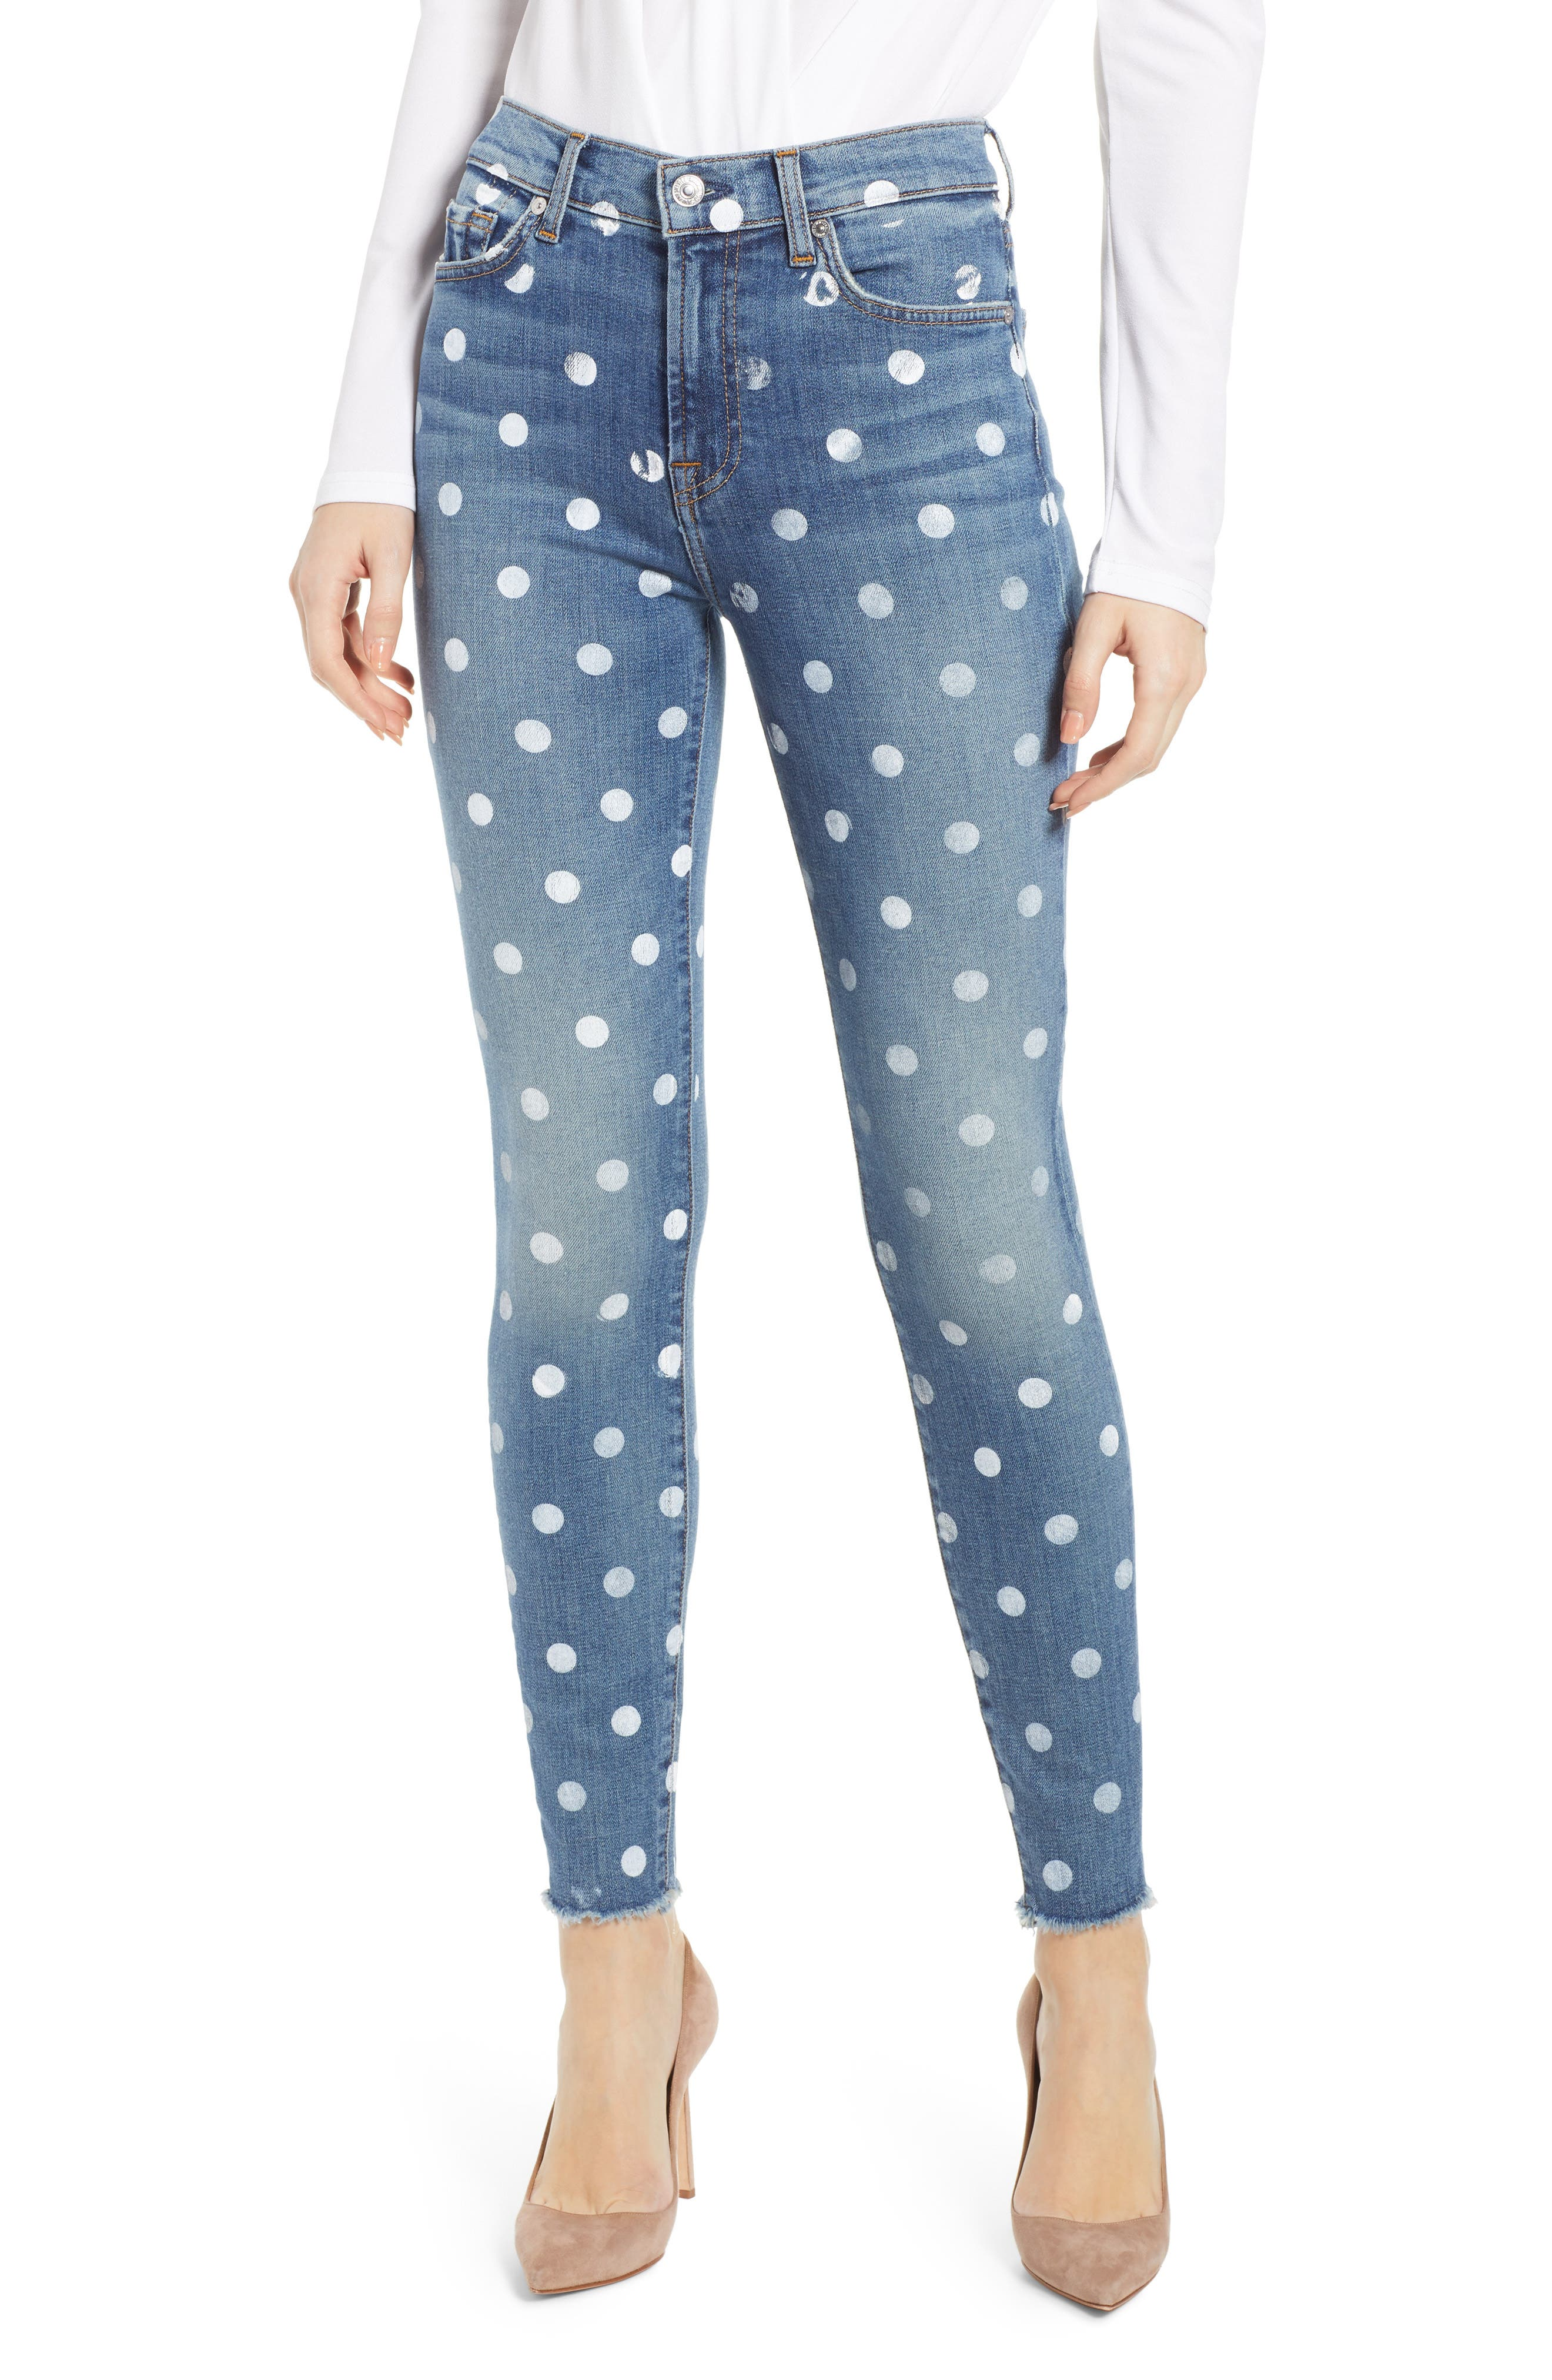 7 FOR ALL MANKIND<SUP>®</SUP>, Polka Dot High Waist Ankle Skinny Jeans, Main thumbnail 1, color, RIDGEMONT VINTAGE